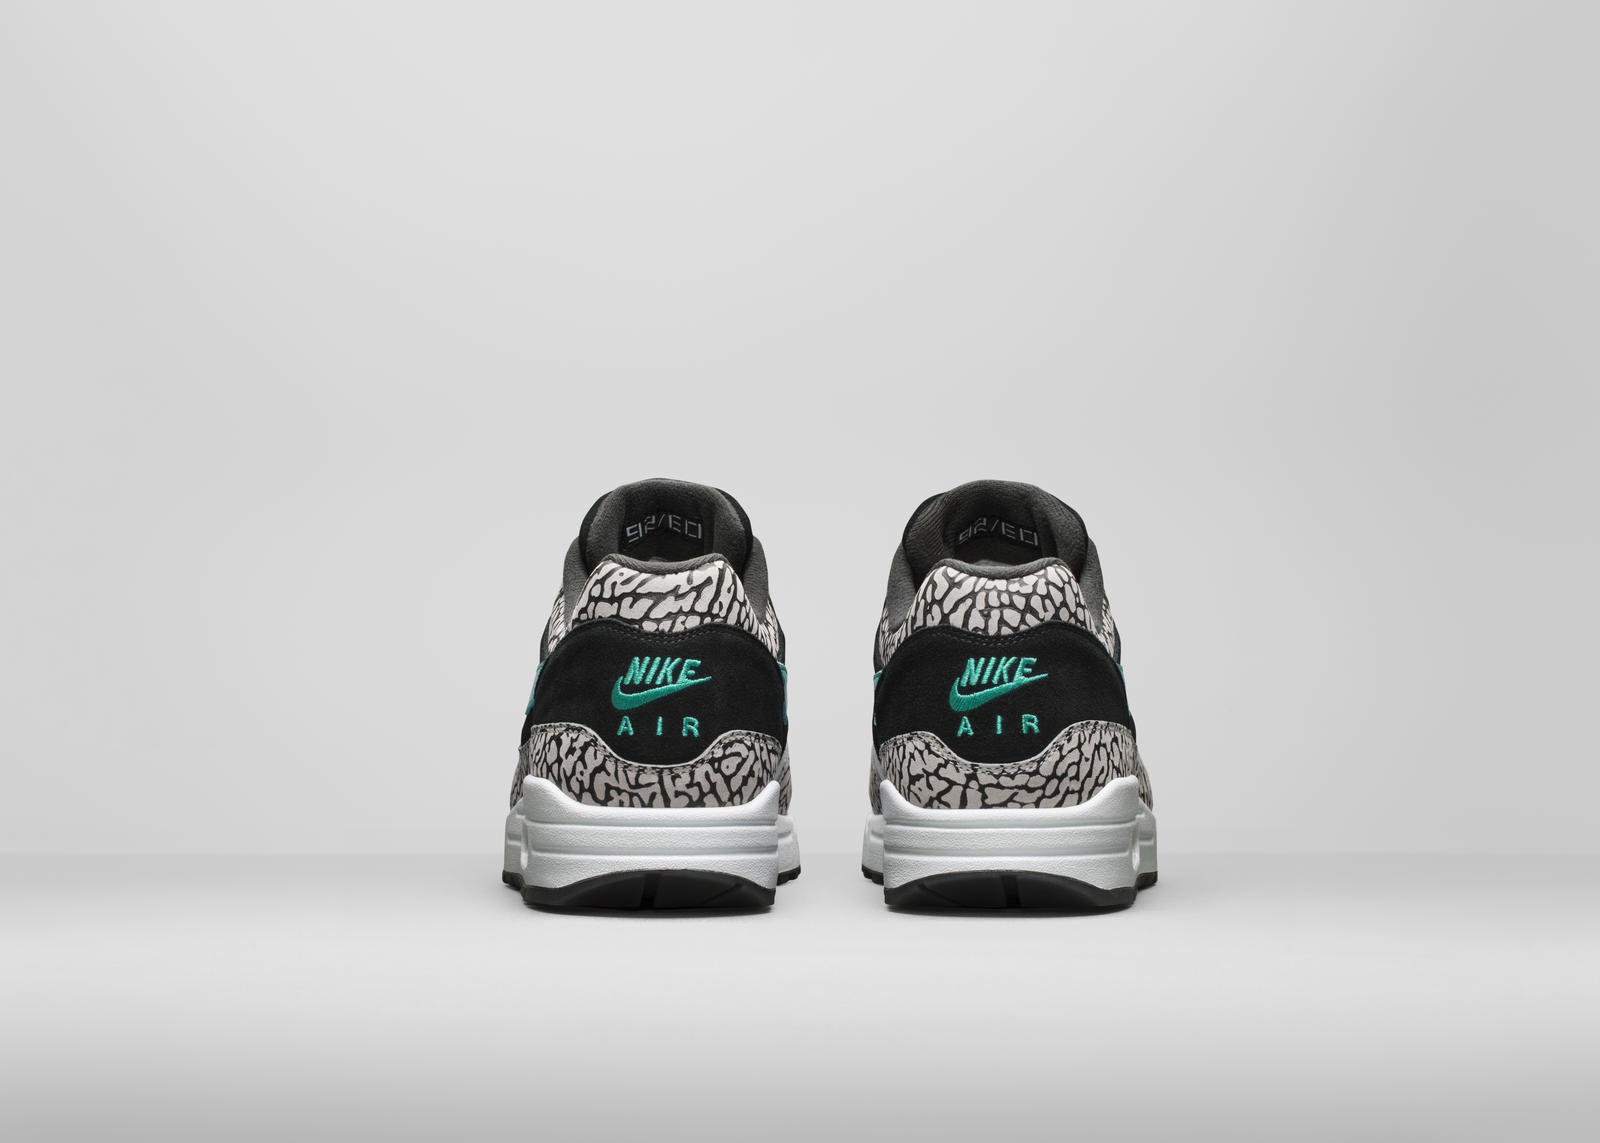 Elephant in the Room: The atmos Air Max 1 x Jordan III Pack